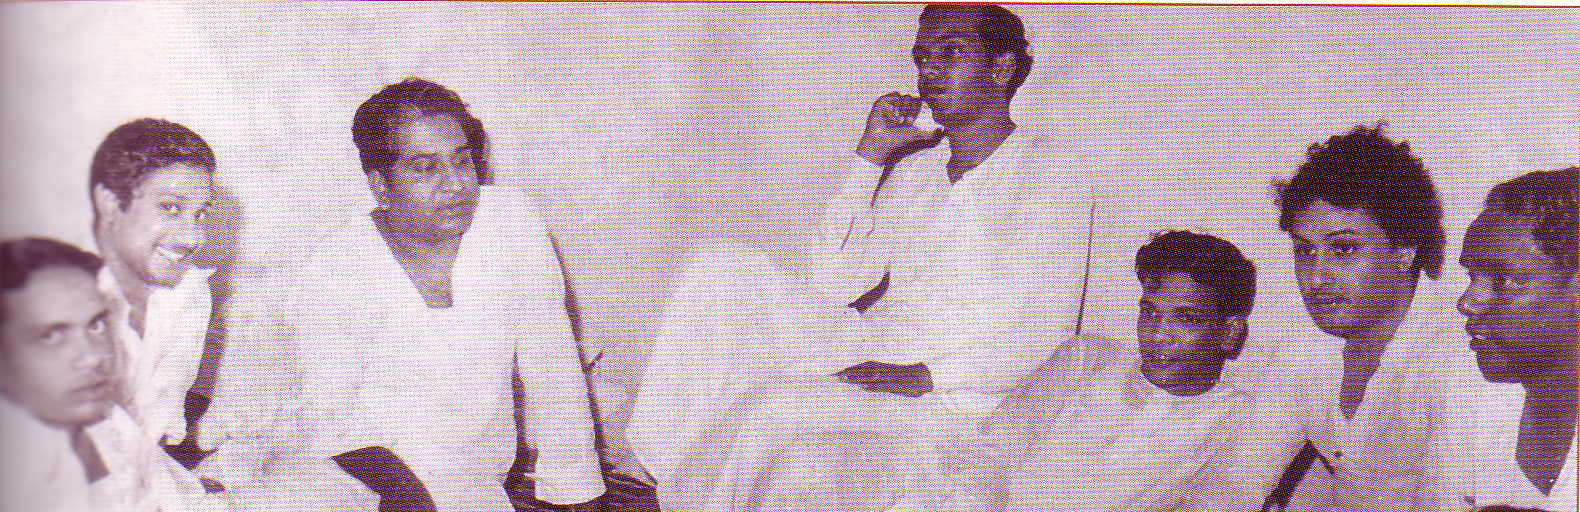 Sivaji Ganesan's wedding day May 1, 1952